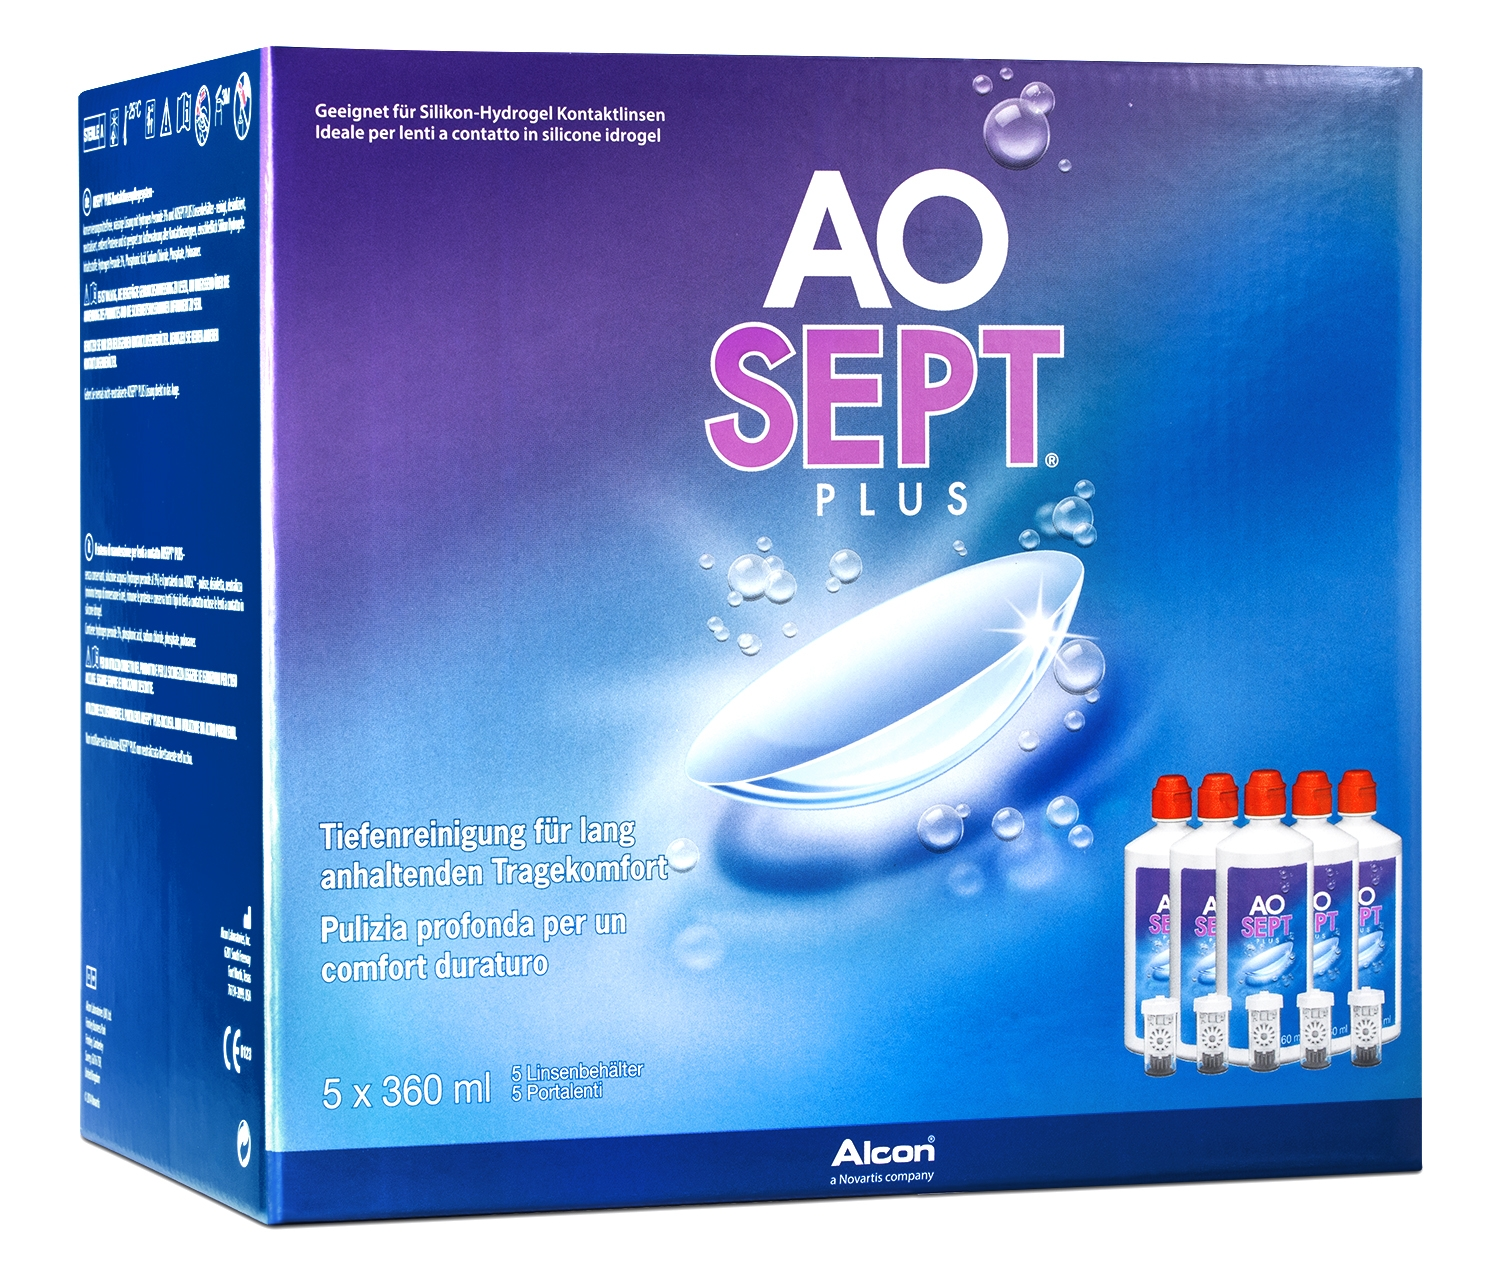 AOSEPT Plus Sparpack, Alcon (5 x 360 ml)